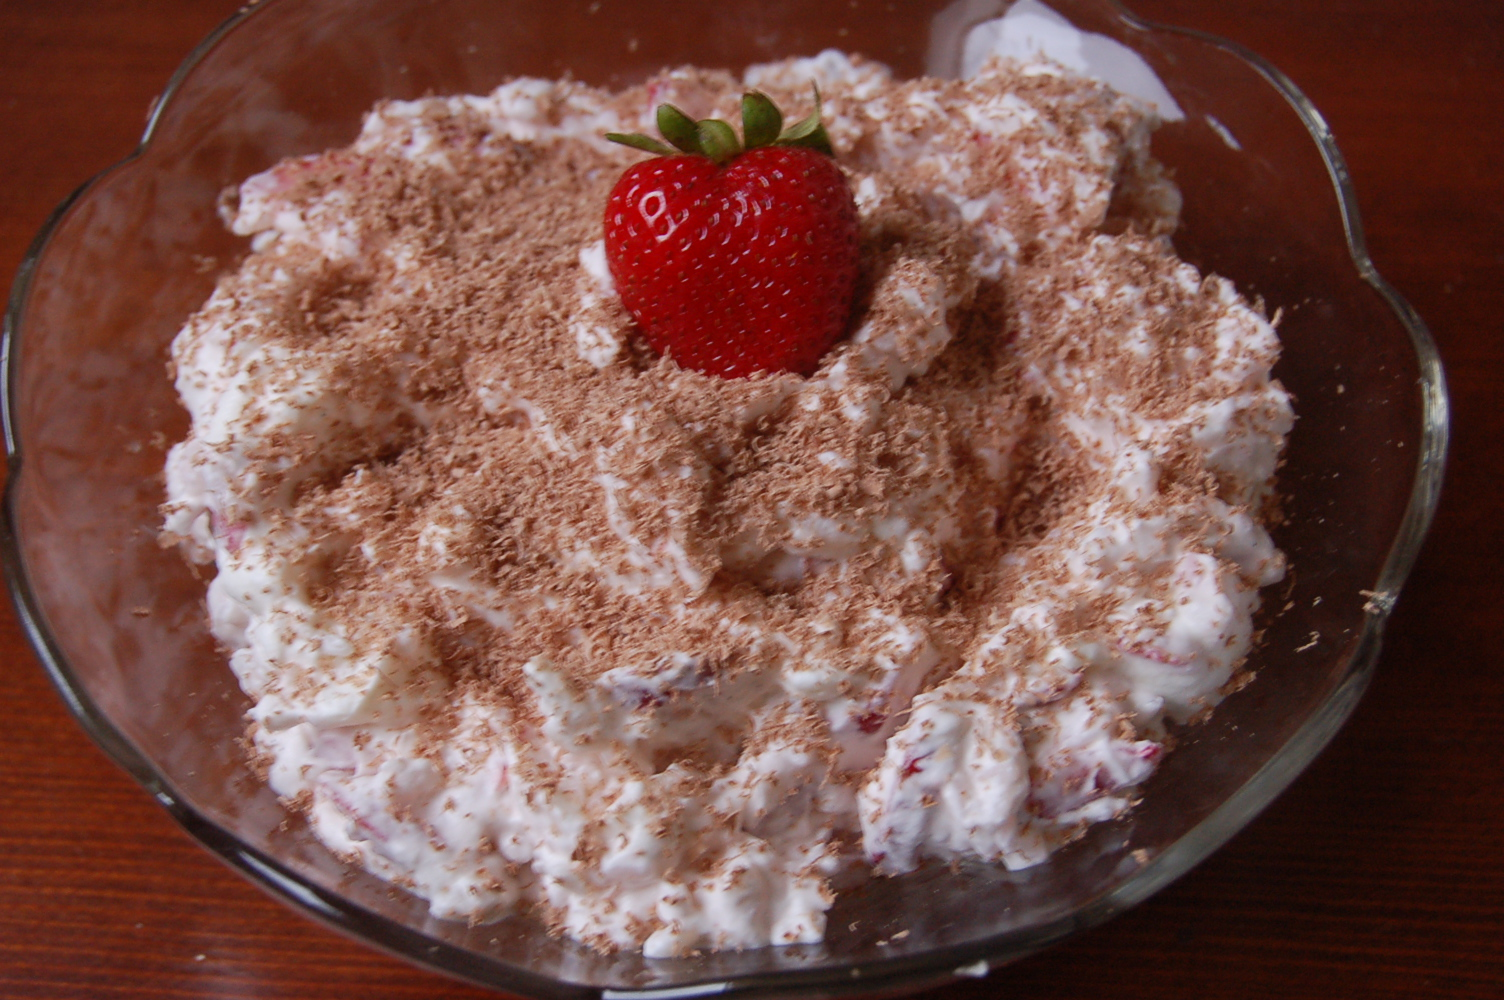 Leftover Rice Dessert with Strawberries